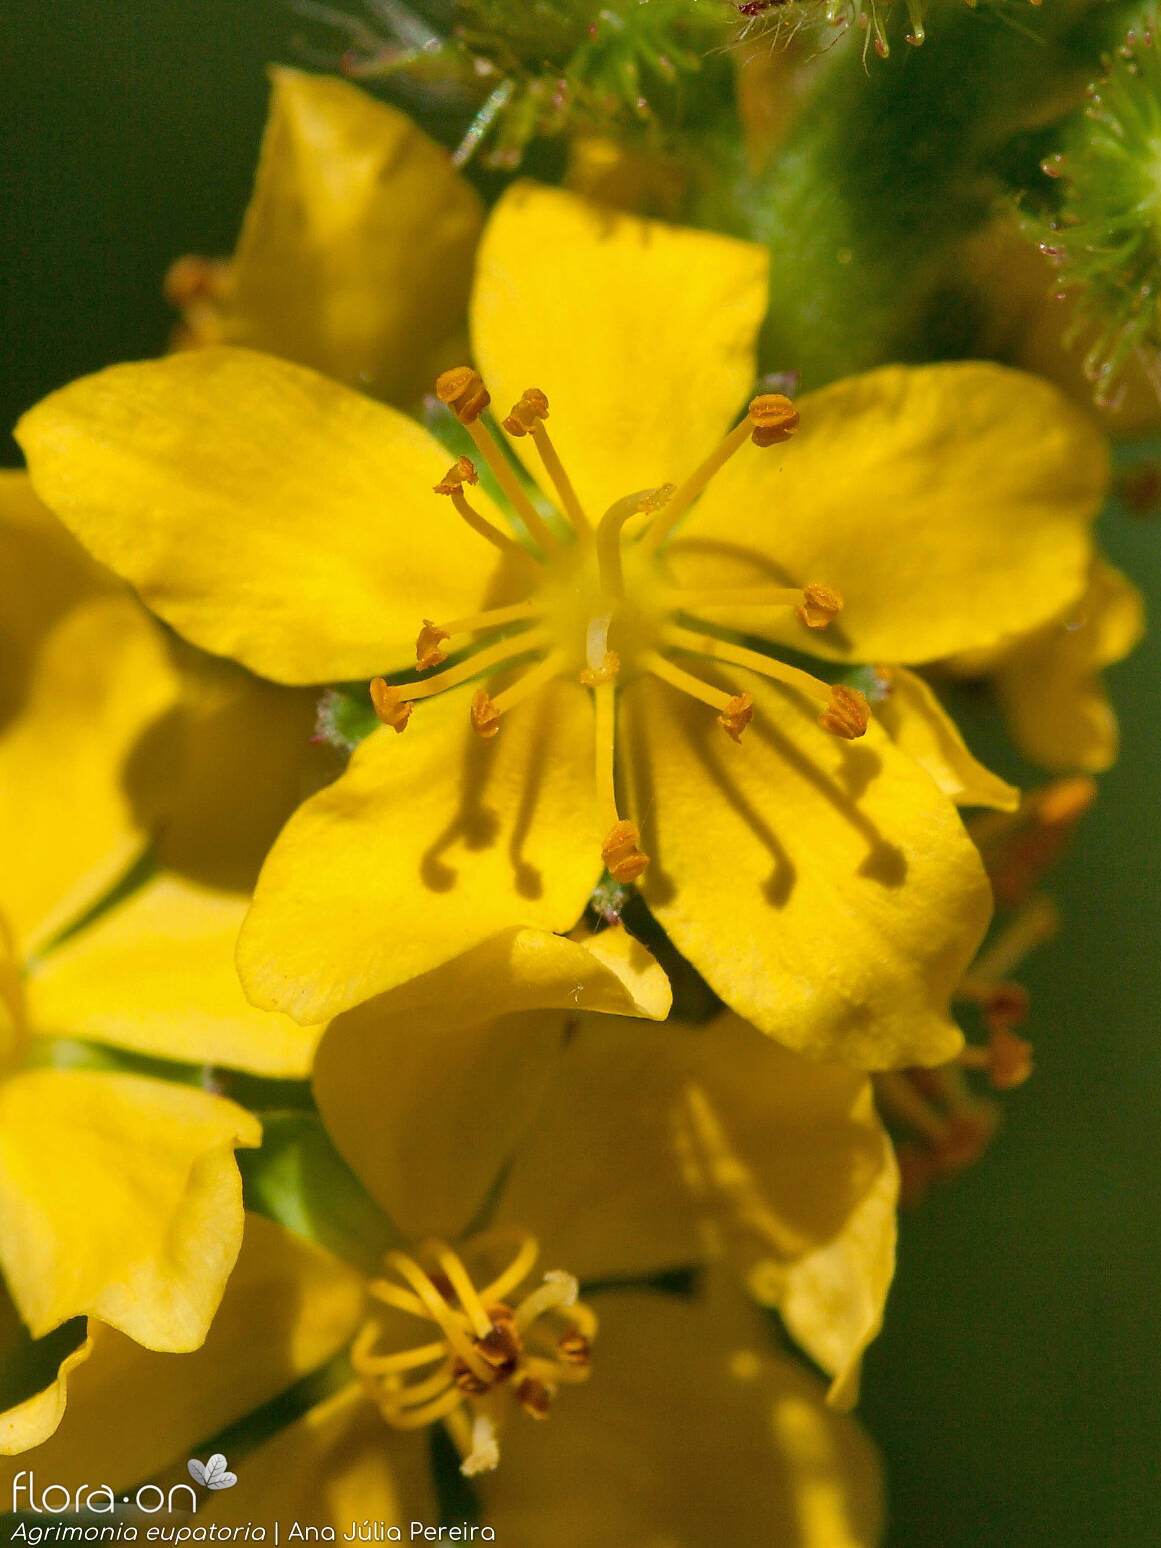 Agrimonia eupatoria - Flor (close-up) | Ana Júlia Pereira; CC BY-NC 4.0